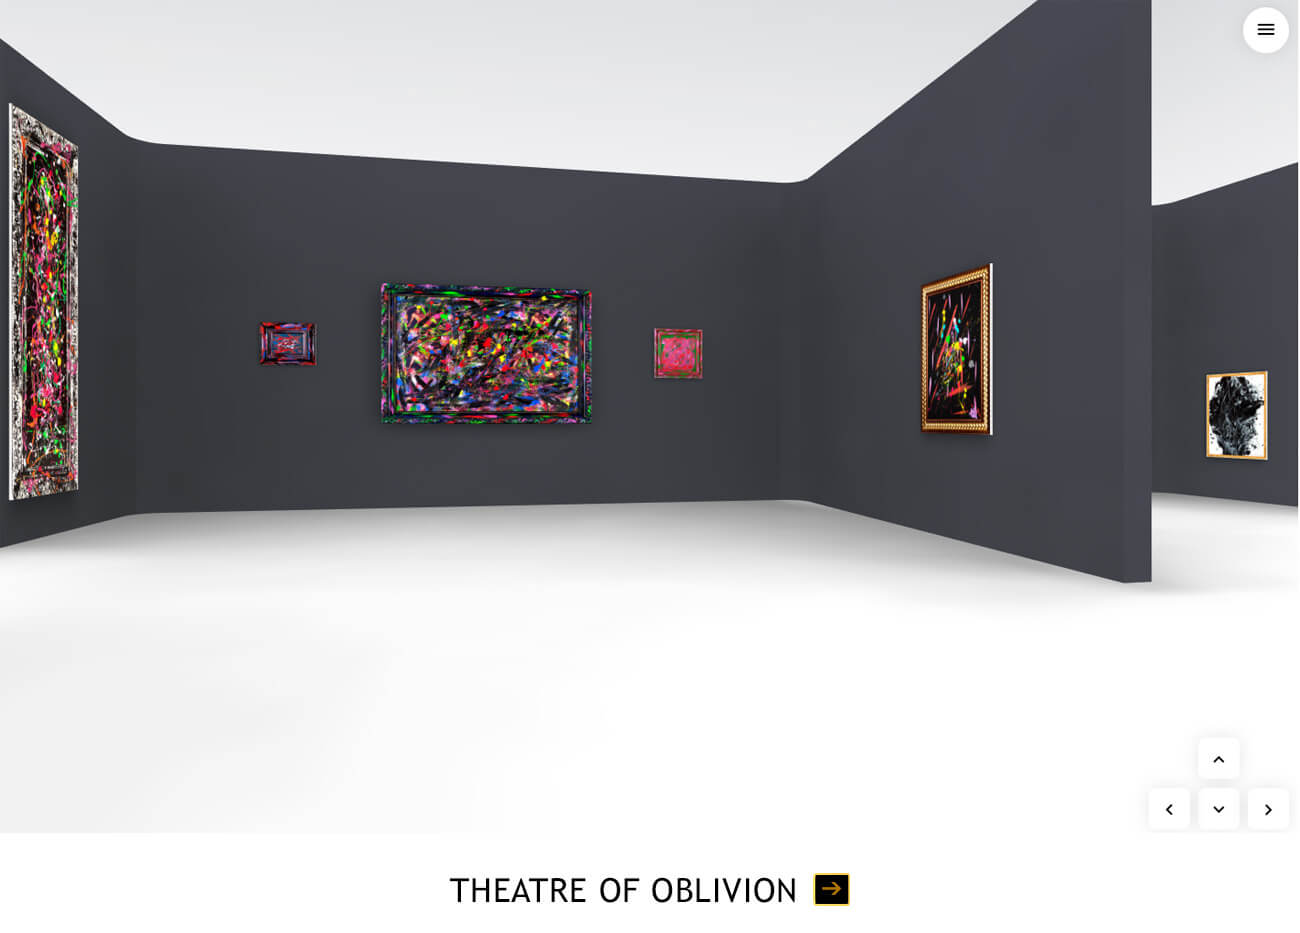 Theater of Oblivion